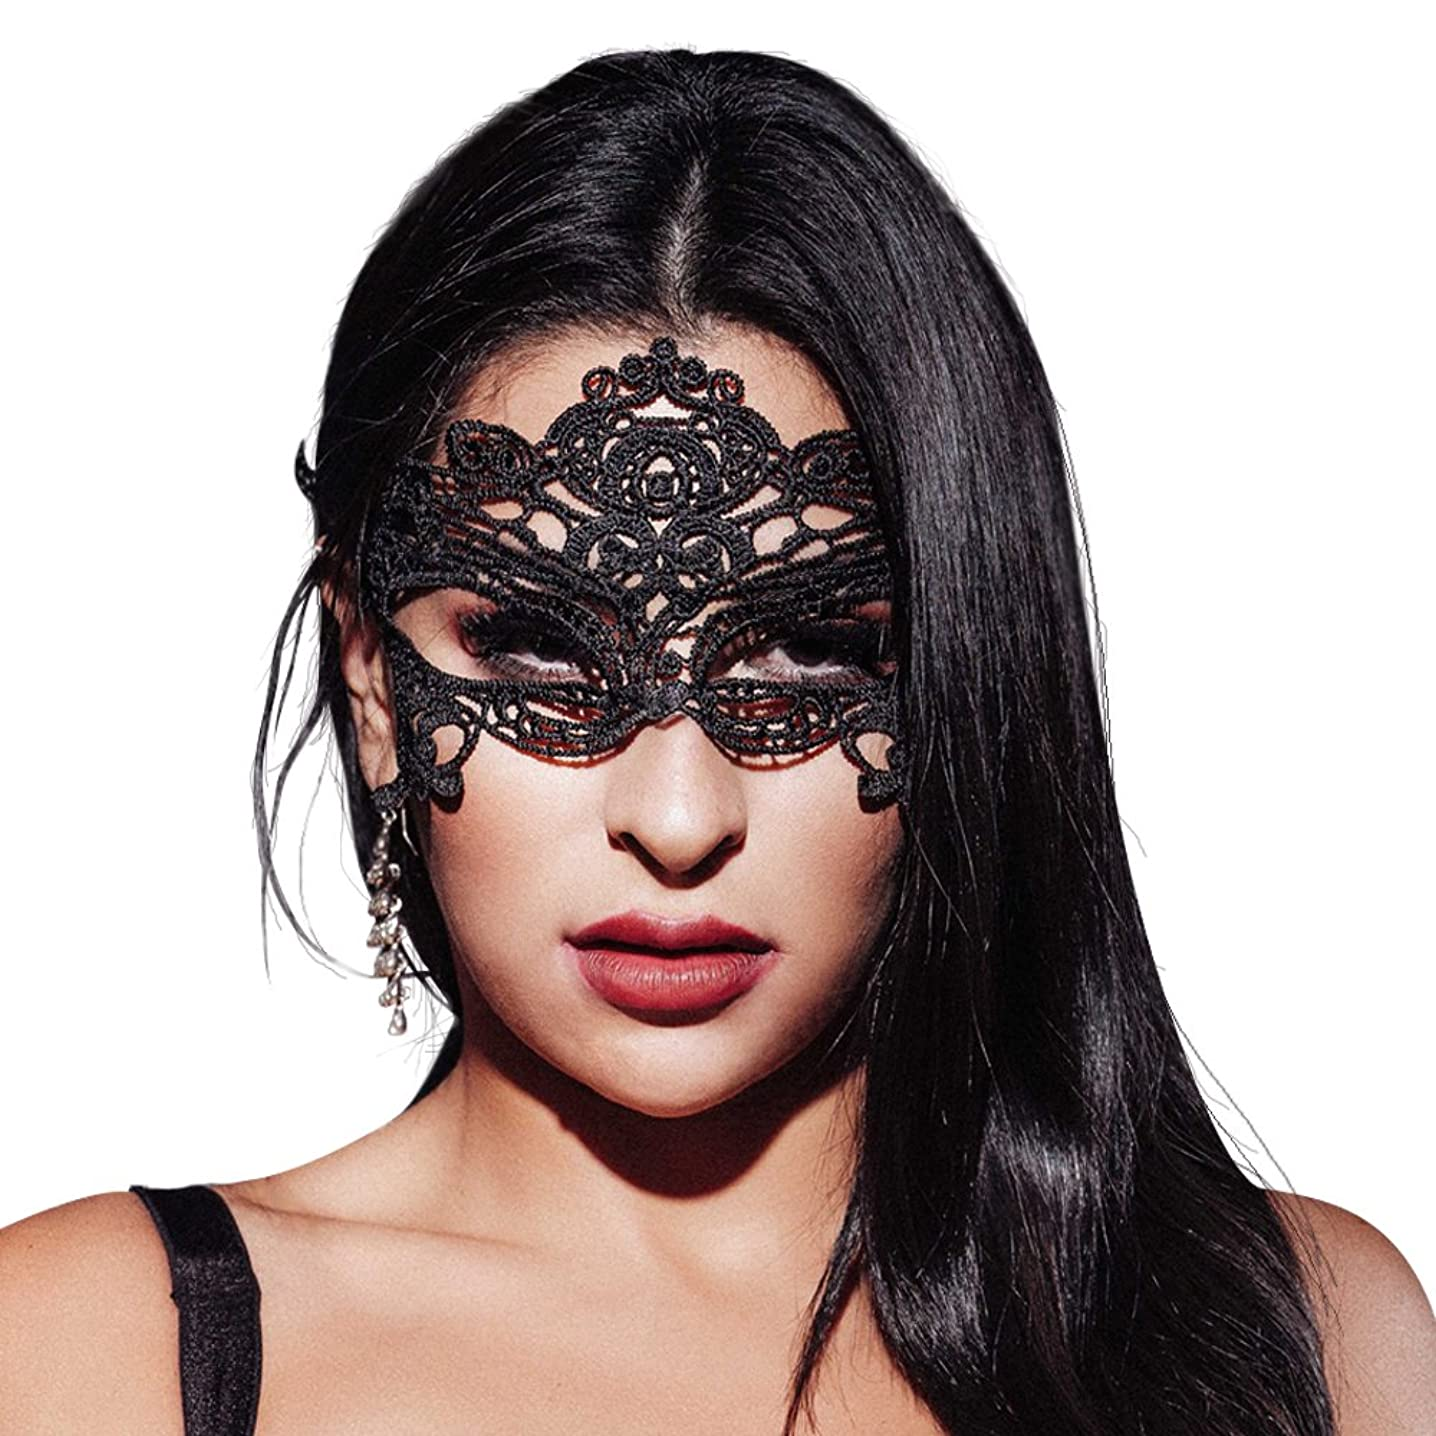 AIYUE Womens Lace Mask Black Lace Eye Mask Sexy Masquerade Party Mask Pack of 2 Mask Masquerade Couple